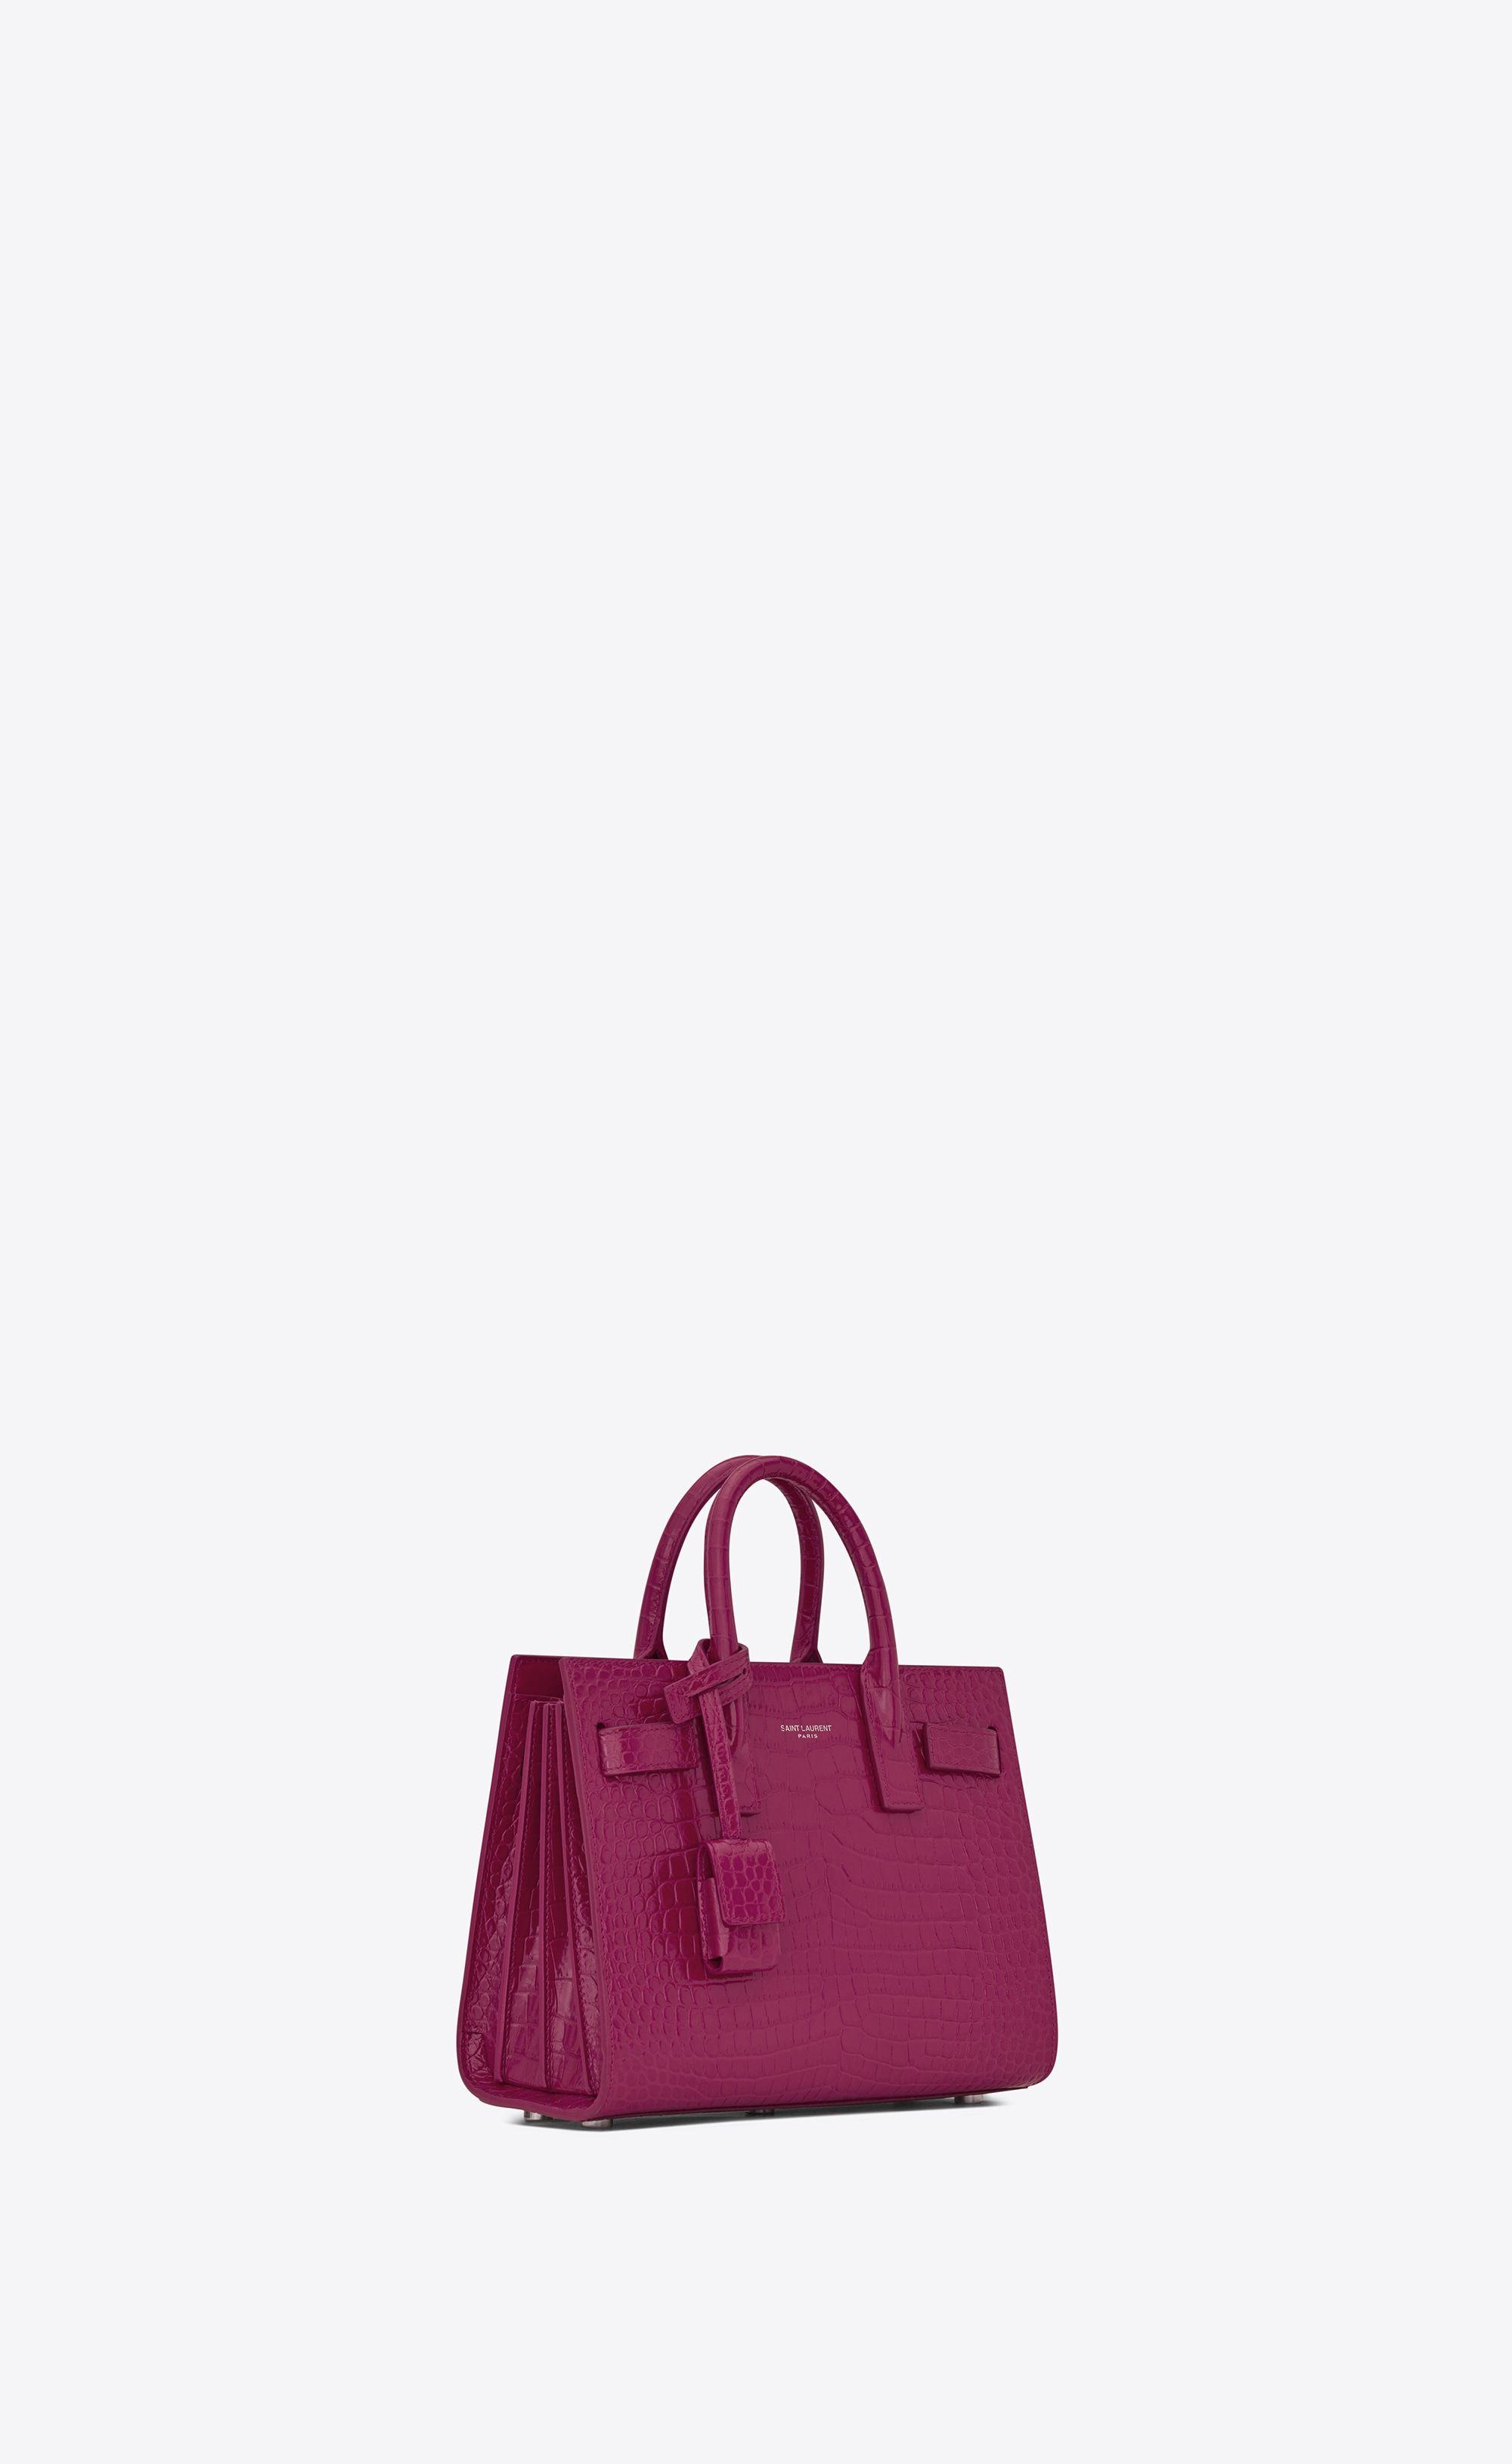 9d49d65ccef Saint Laurent - Classic Nano Sac de Jour bag in pink peony crocodile  embossed shiny leather ($1,690)